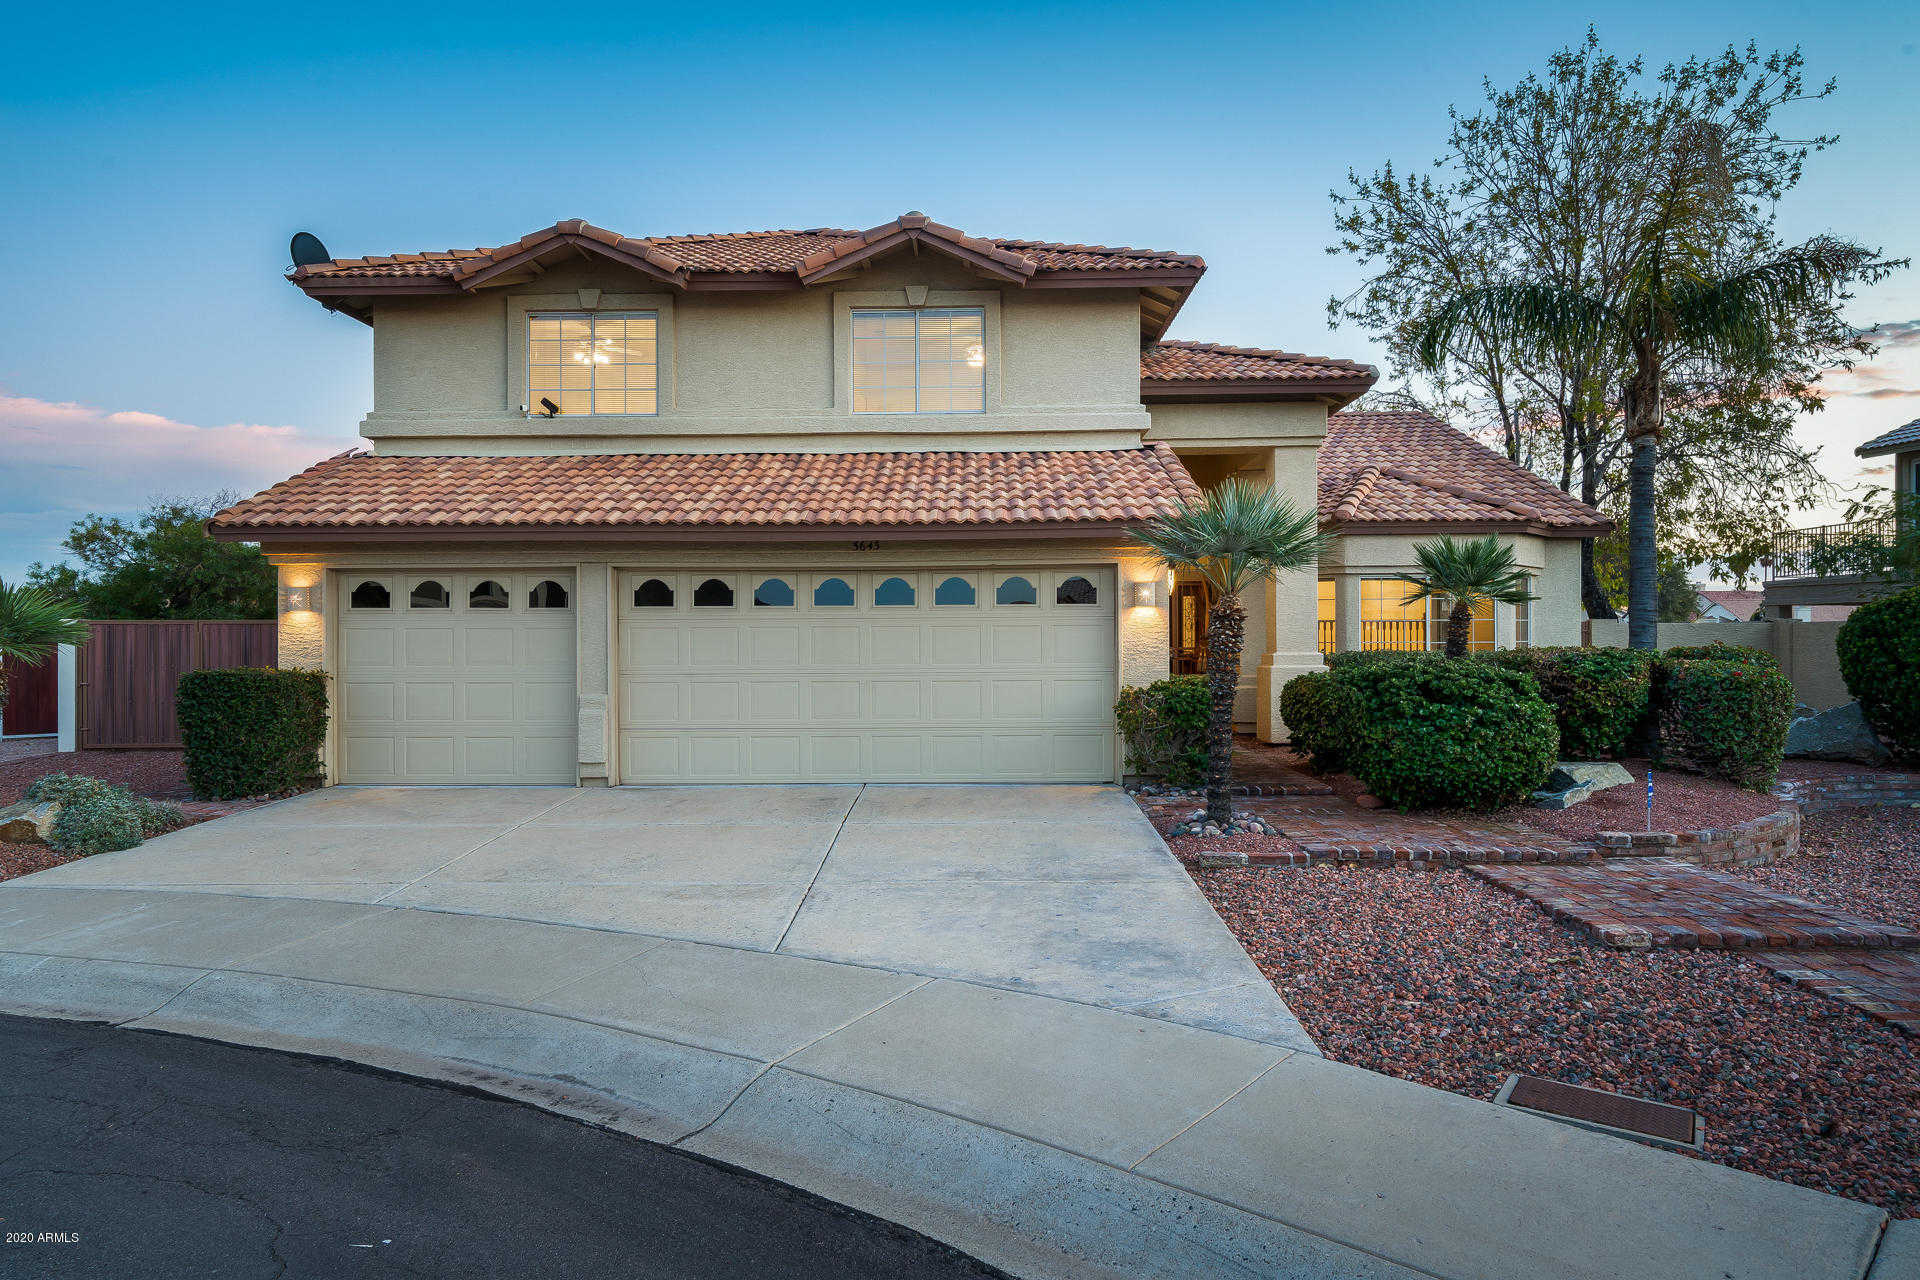 $535,000 - 4Br/3Ba - Home for Sale in Arrowhead Lakes 3 Lot 239-333 Tr A-b, Glendale